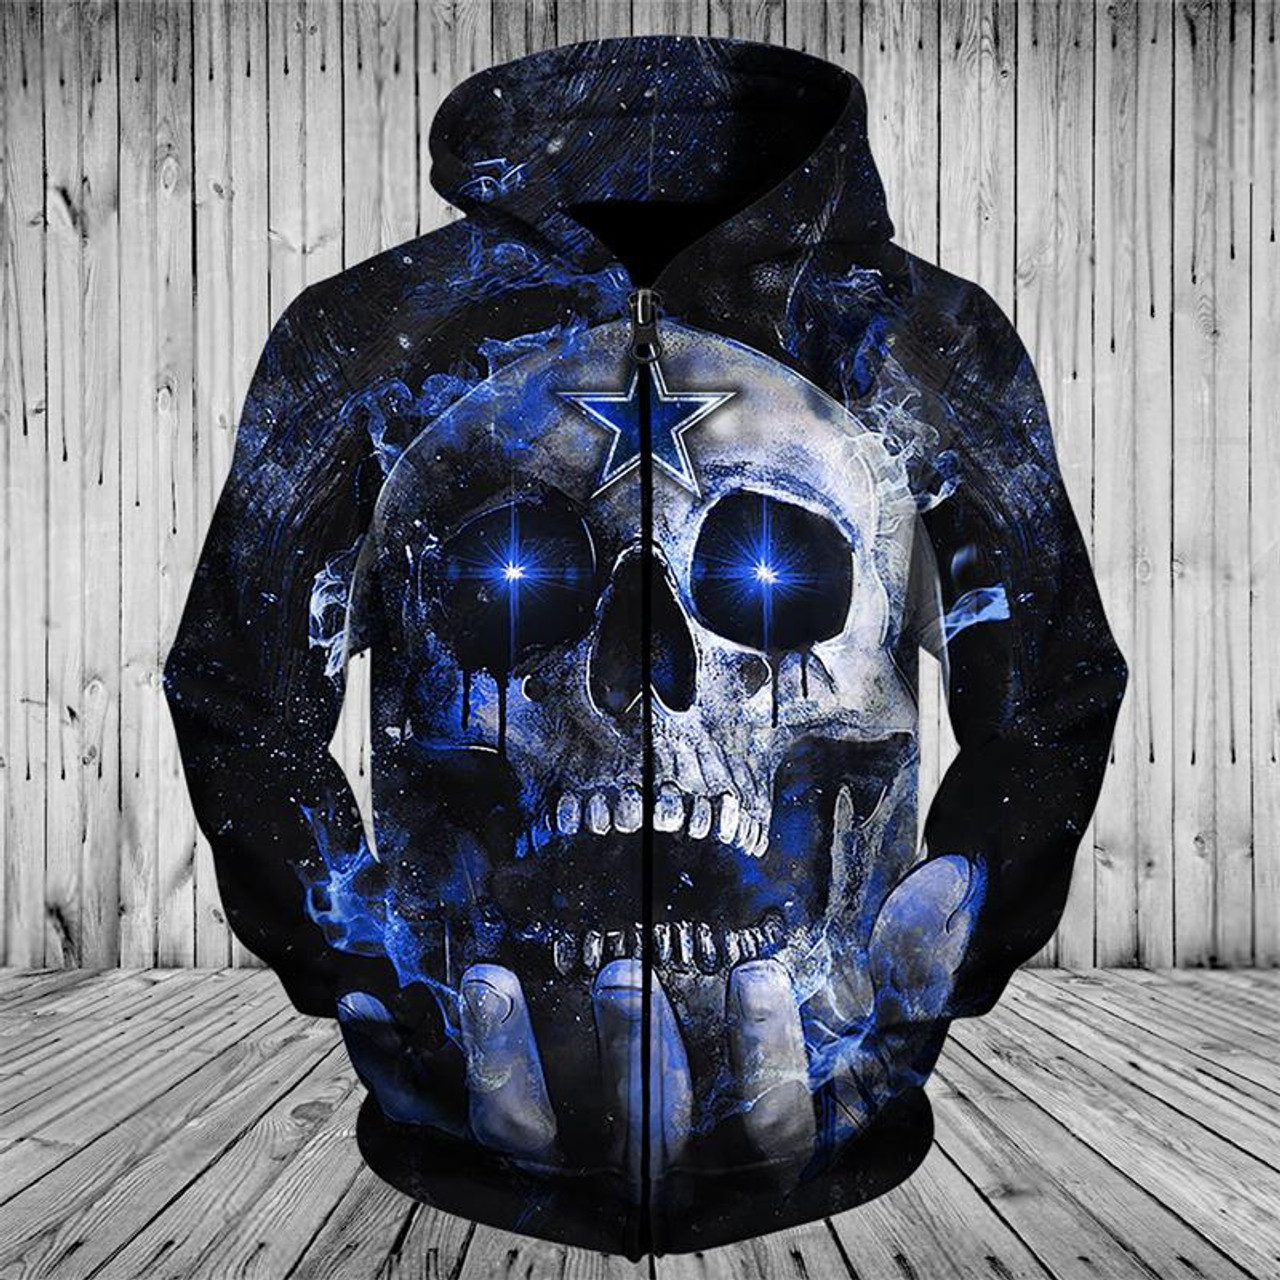 newest 5554a 70fab **(OFFICIAL-N.F.L.DALLAS-COWBOYS-TEAM-ZIPPERED-NEON-SKULL-HOODIES/CUSTOM-3D-NEON-GRAPHIC-PRINTED-DOUBLE-SIDED-ALL-OVER-OFFICIAL-COWBOYS-LOGOS,IN-COWBO...